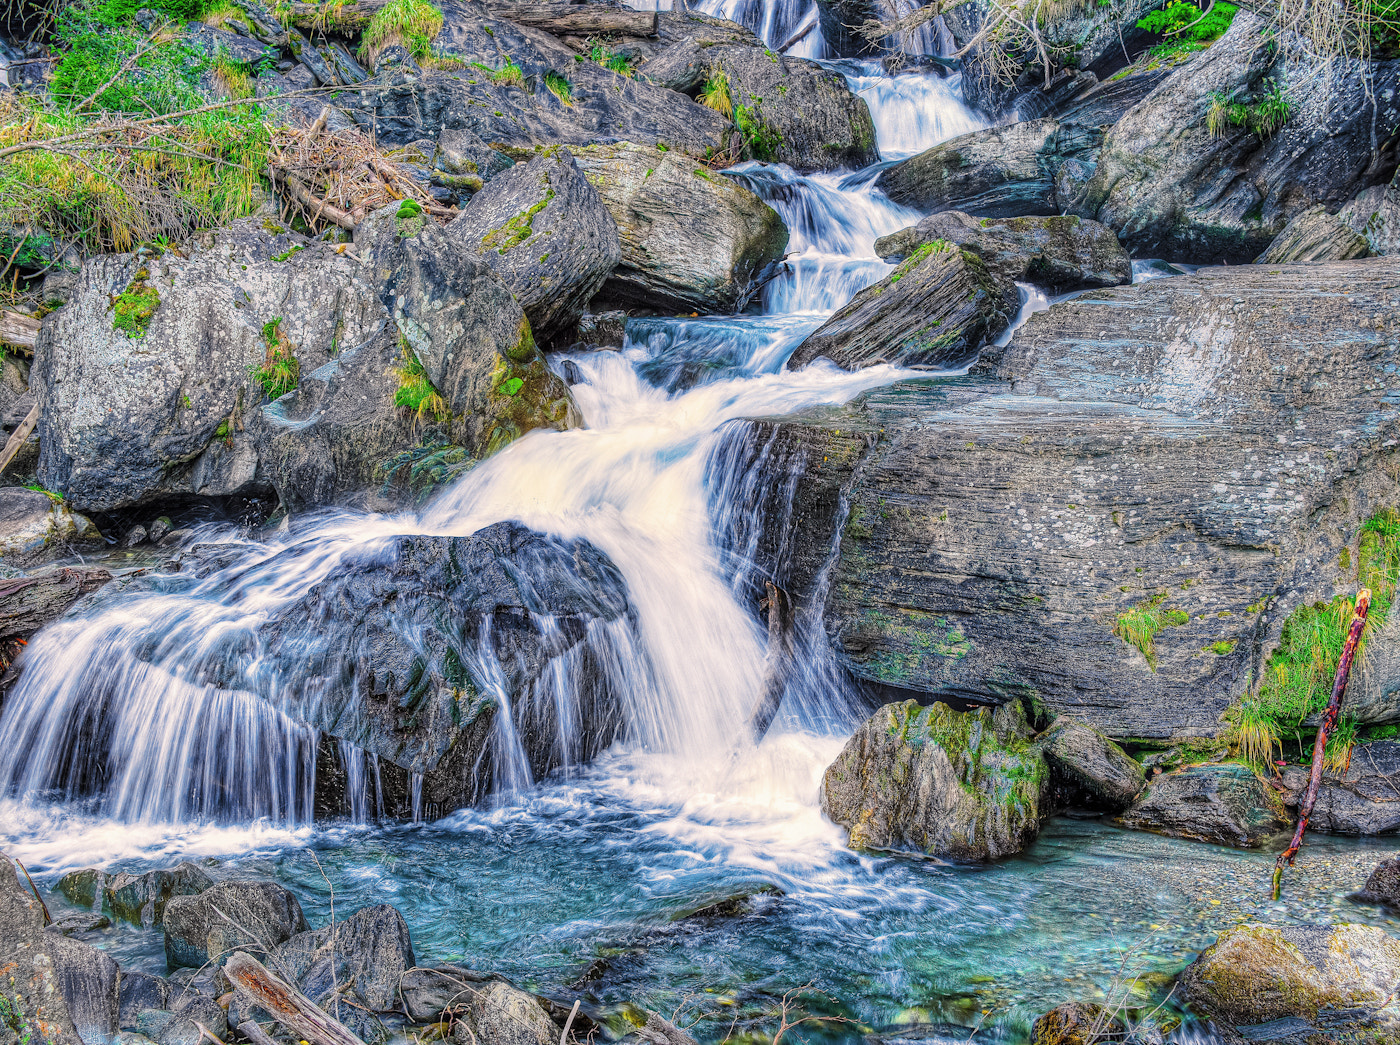 Photograph Cascade by Paul Werner Suess on 500px